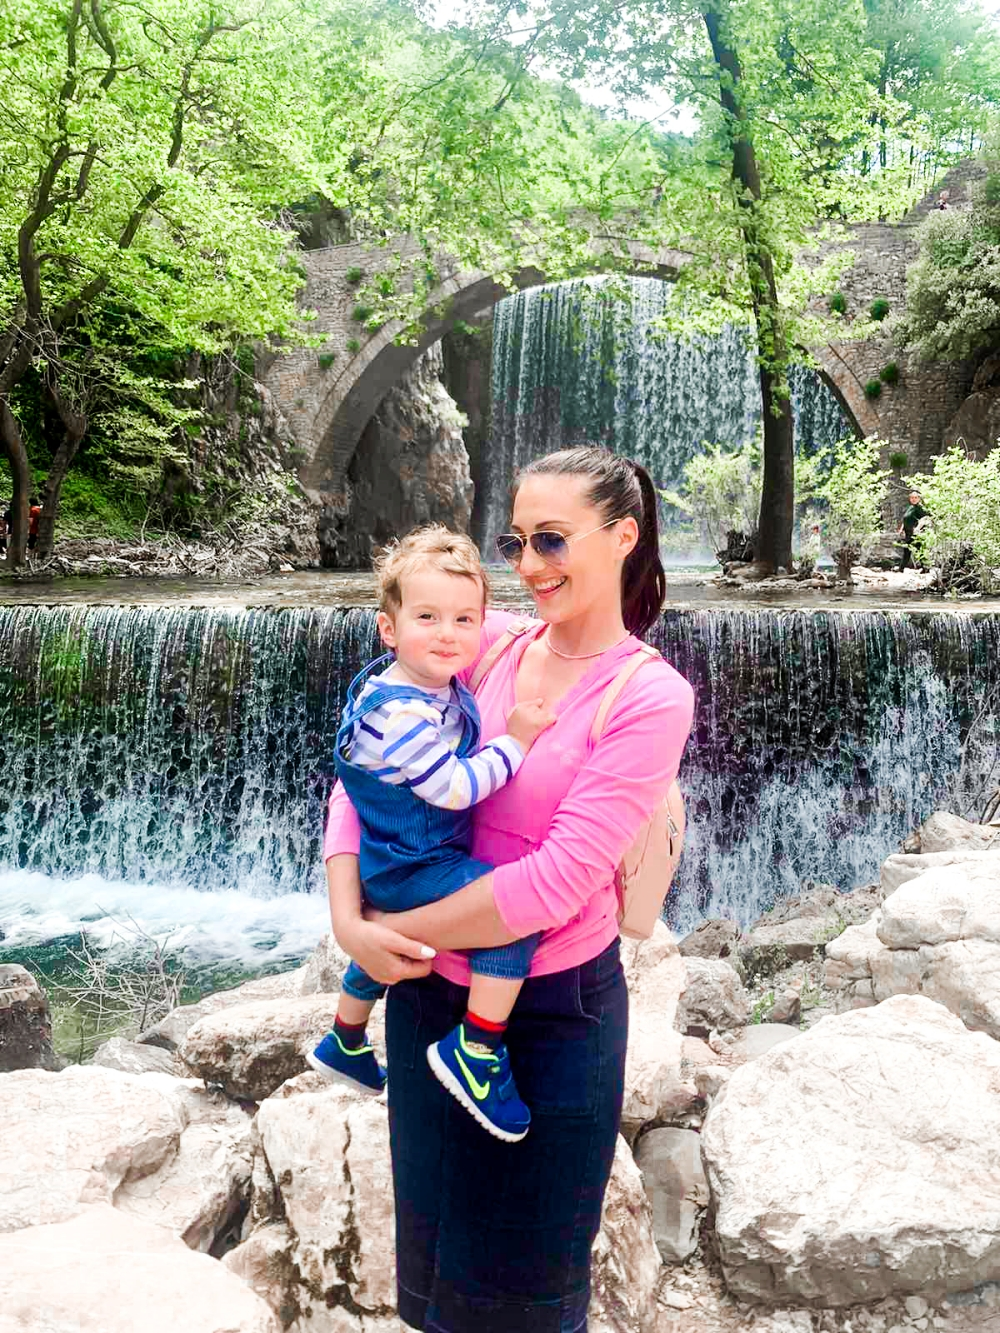 spending time in nature with baby, lifestyle activities for mom and kid